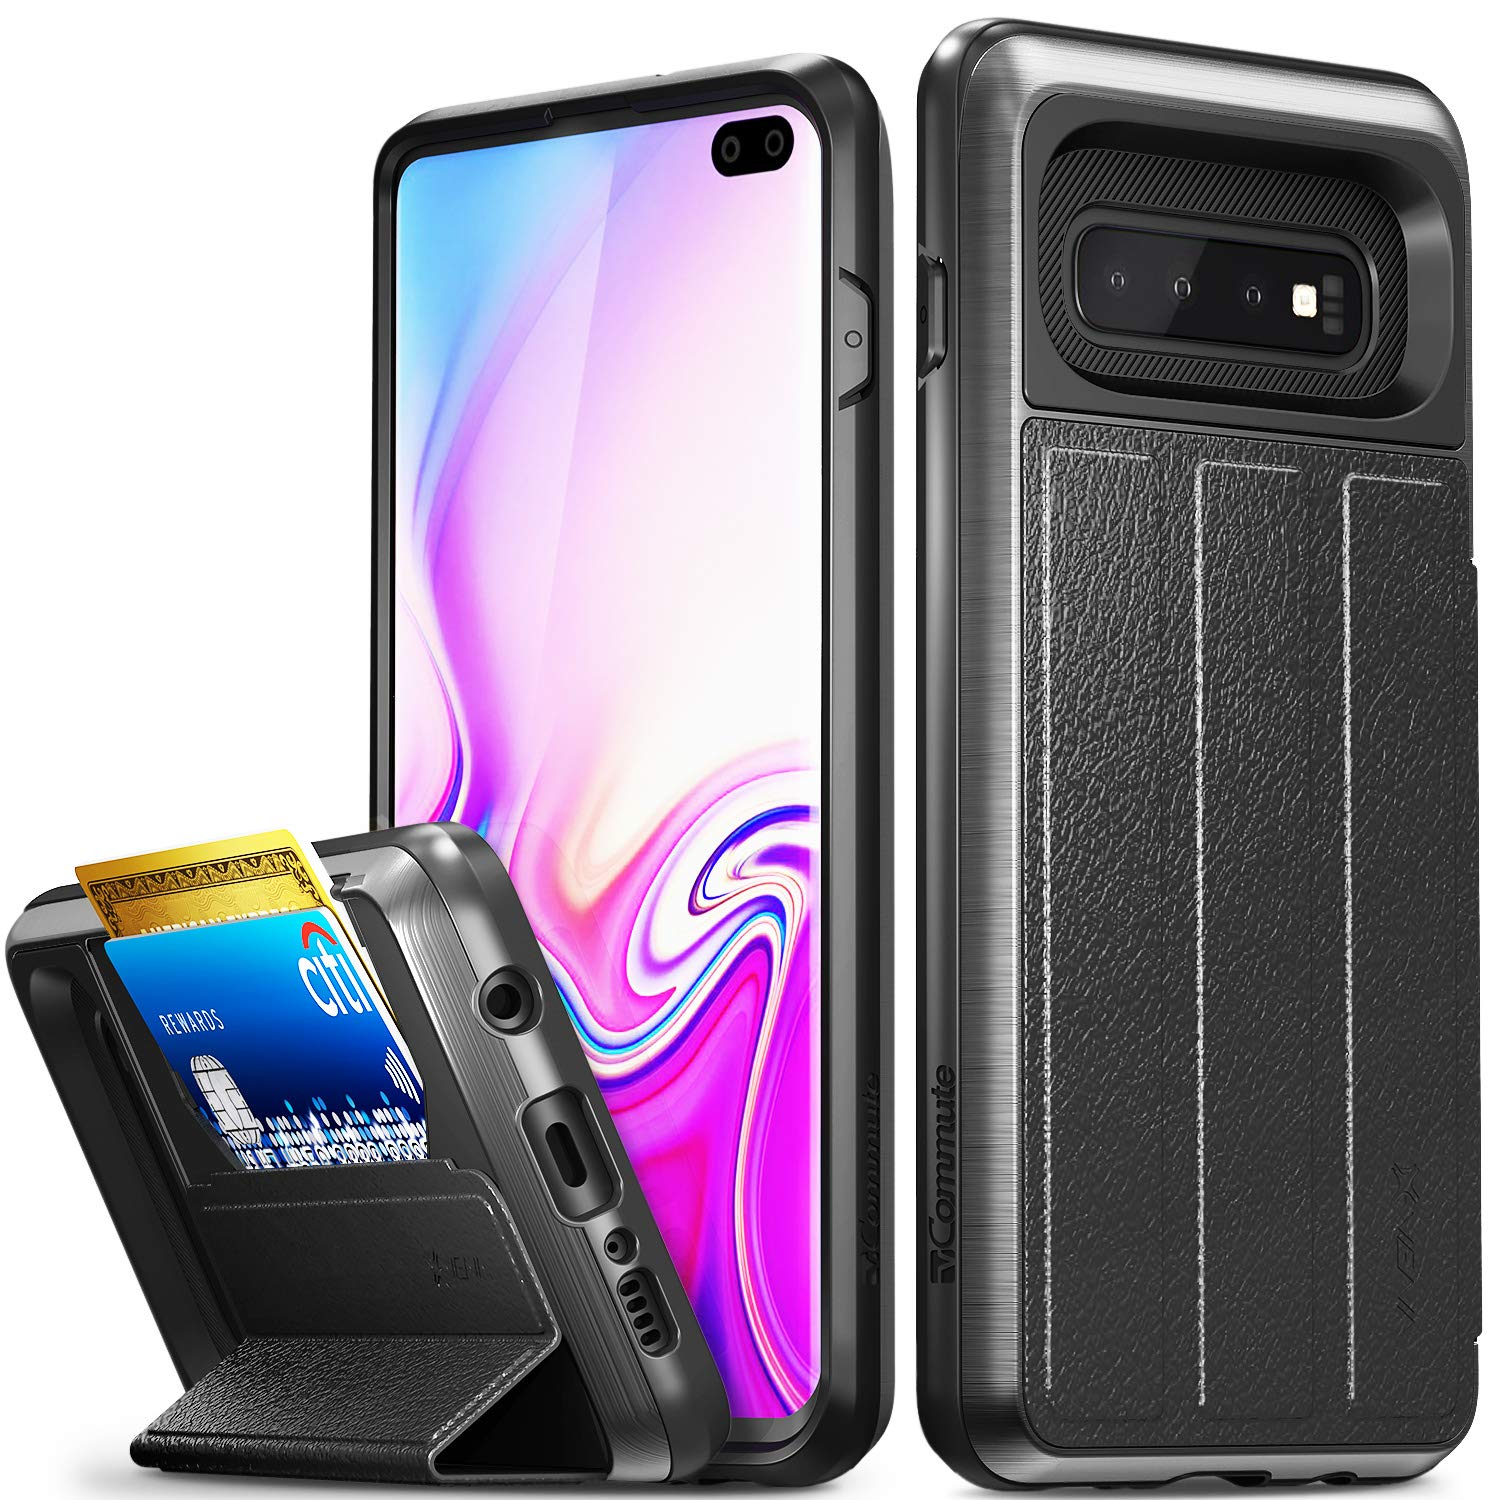 Vena Galaxy S10 Plus Wallet Case, [vCommute] [Military Grade Drop Protection] Flip Leather Cover Card Slot Holder Compatible with Galaxy S10 Plus - Space Gray (PC) / Black (TPU) / Black (Leather) by Vena